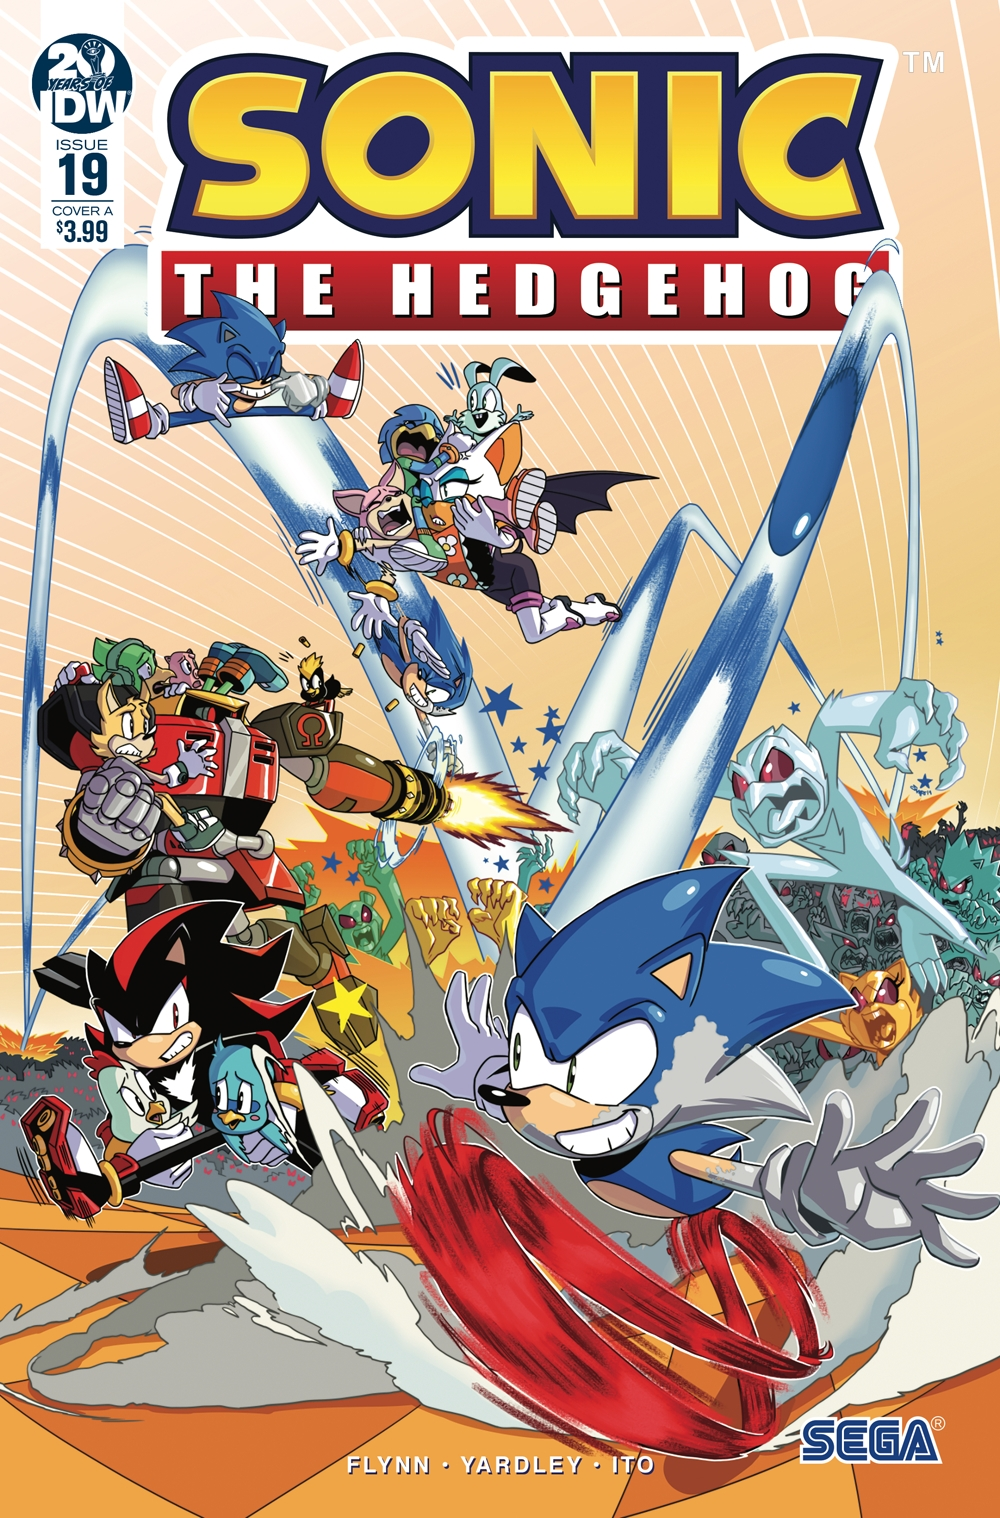 Sonic The Hedgehog #19 Cover A